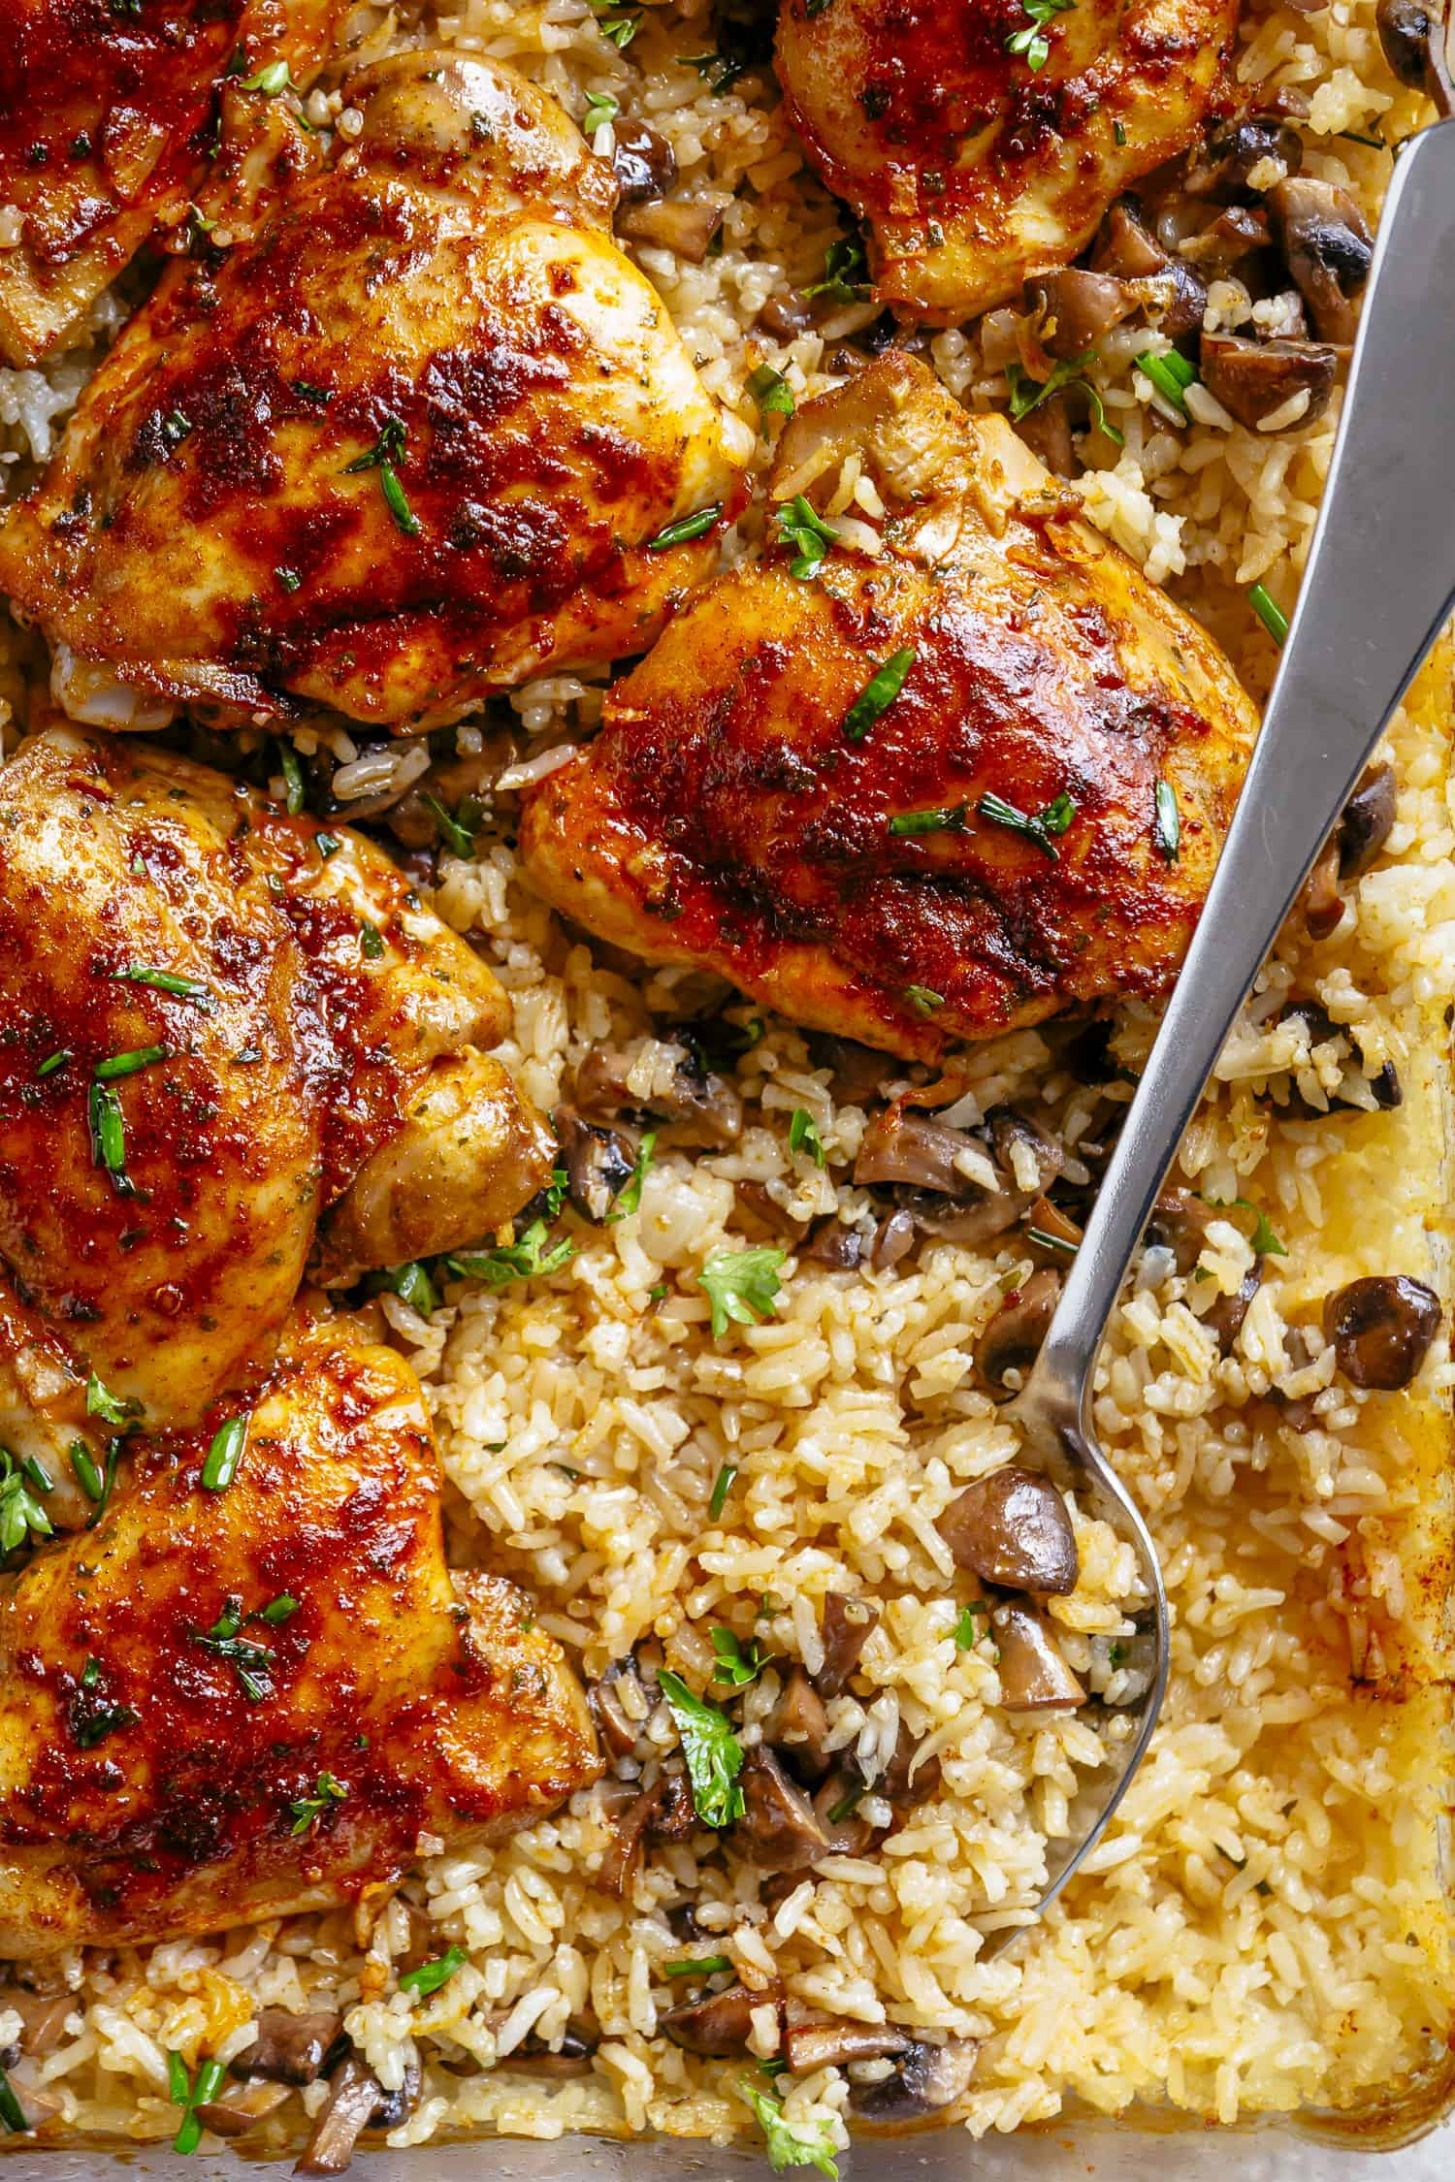 Oven Baked Chicken and Rice - Recipes Chicken And Rice